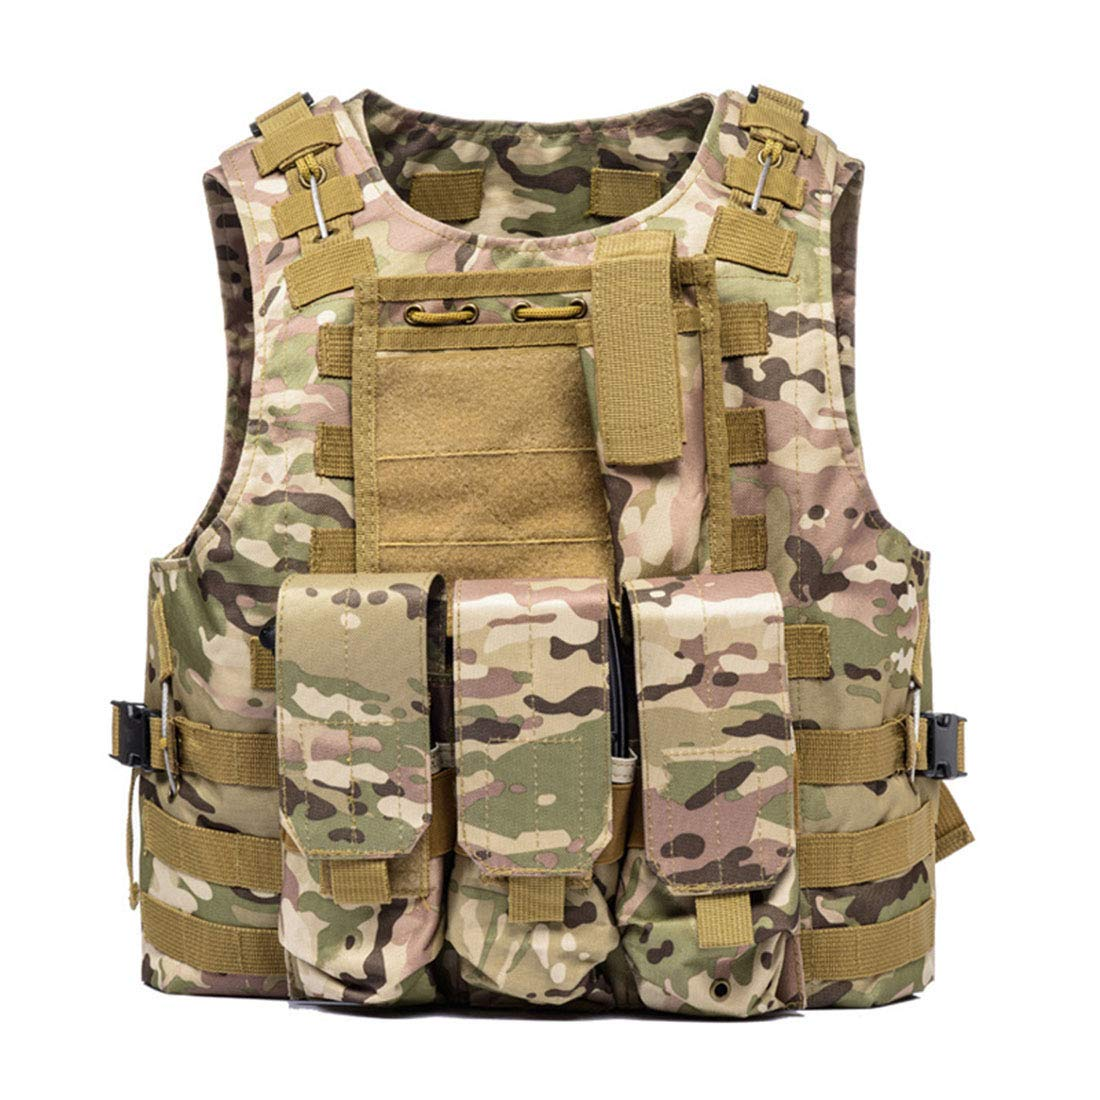 SWQ Military Tactical Vest Barbarians Combat Vest Outdoor Jacket for Airsoft Game CS Military Cosplay